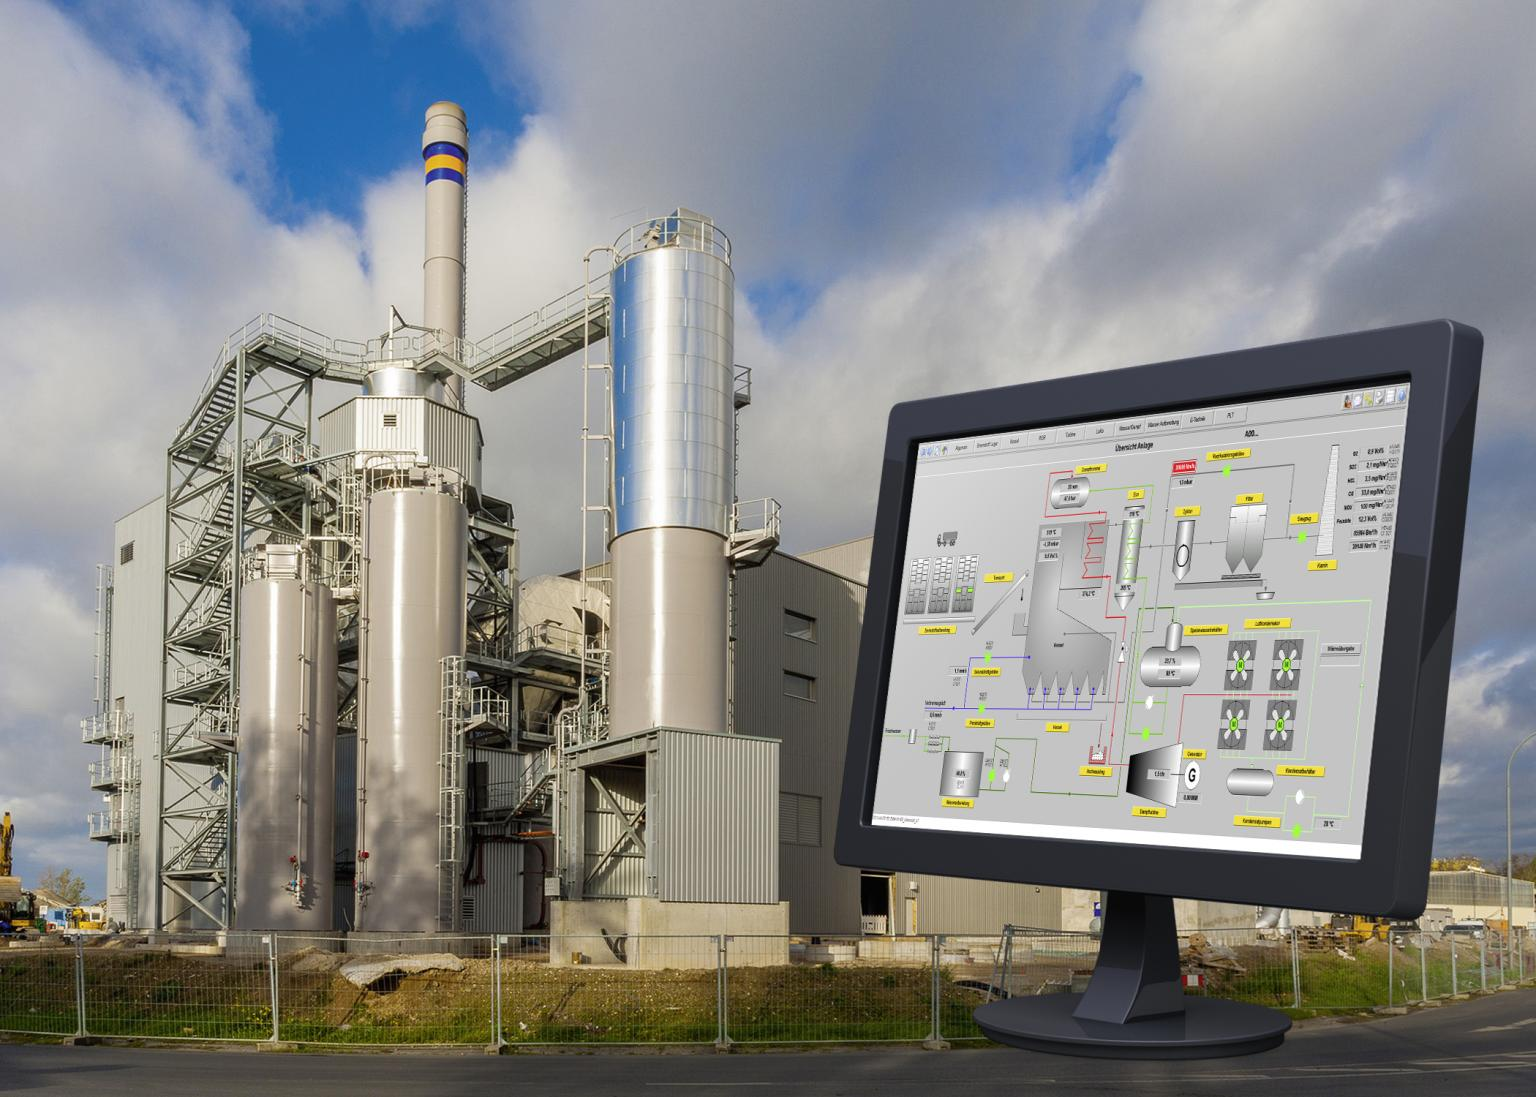 The combined heat and power station is monitored via the PMSXpro process control system from ME-Automation Projects. Source: ESWE BioEnergie GmbH, Mitsubishi Electric Europe B.V., ME-Automation Projects